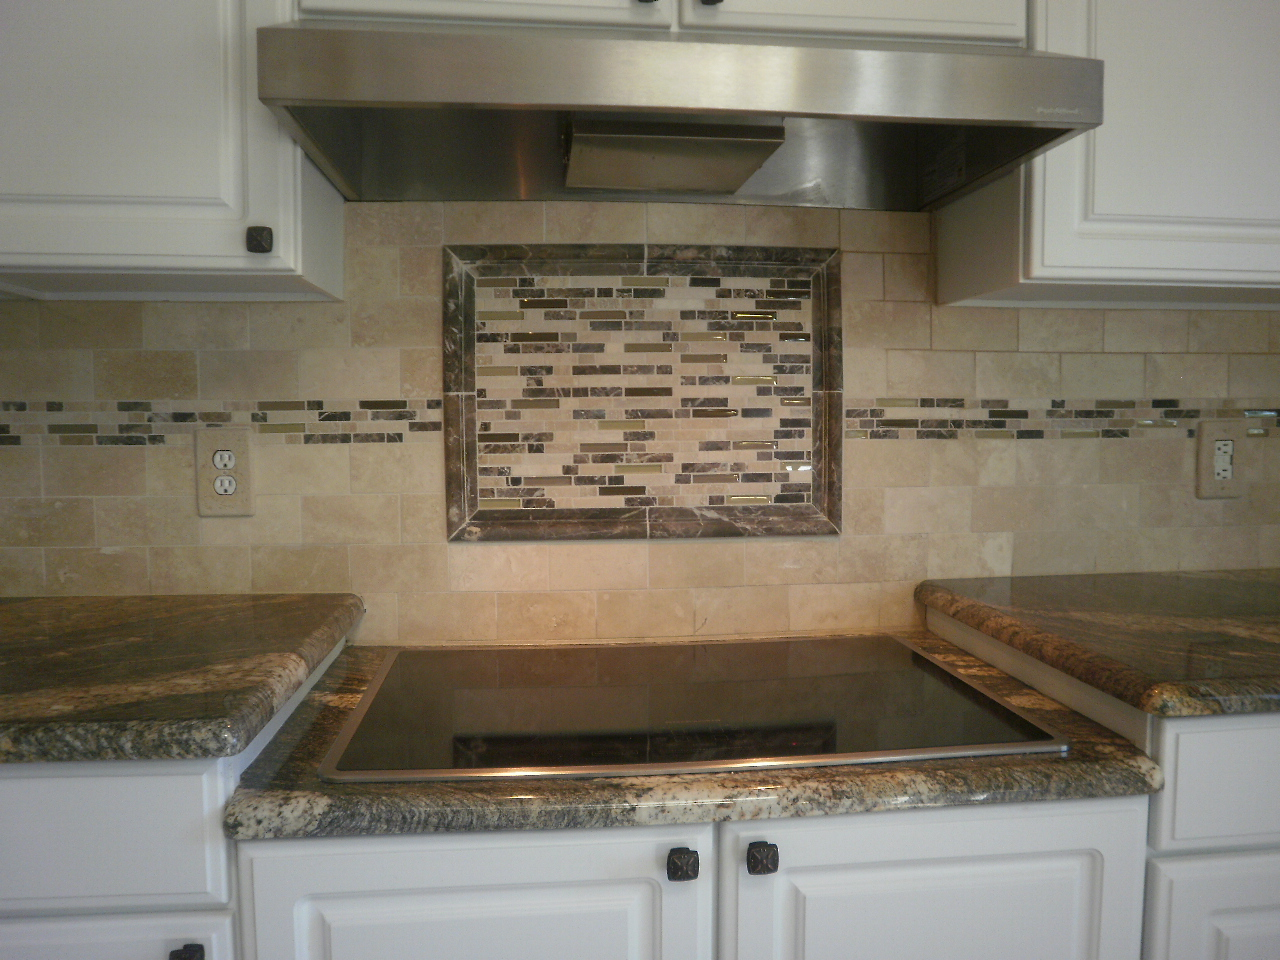 Kitchen Backsplash Accents great kitchen backsplash tile design idea 1023 x 767 321 kb jpeg